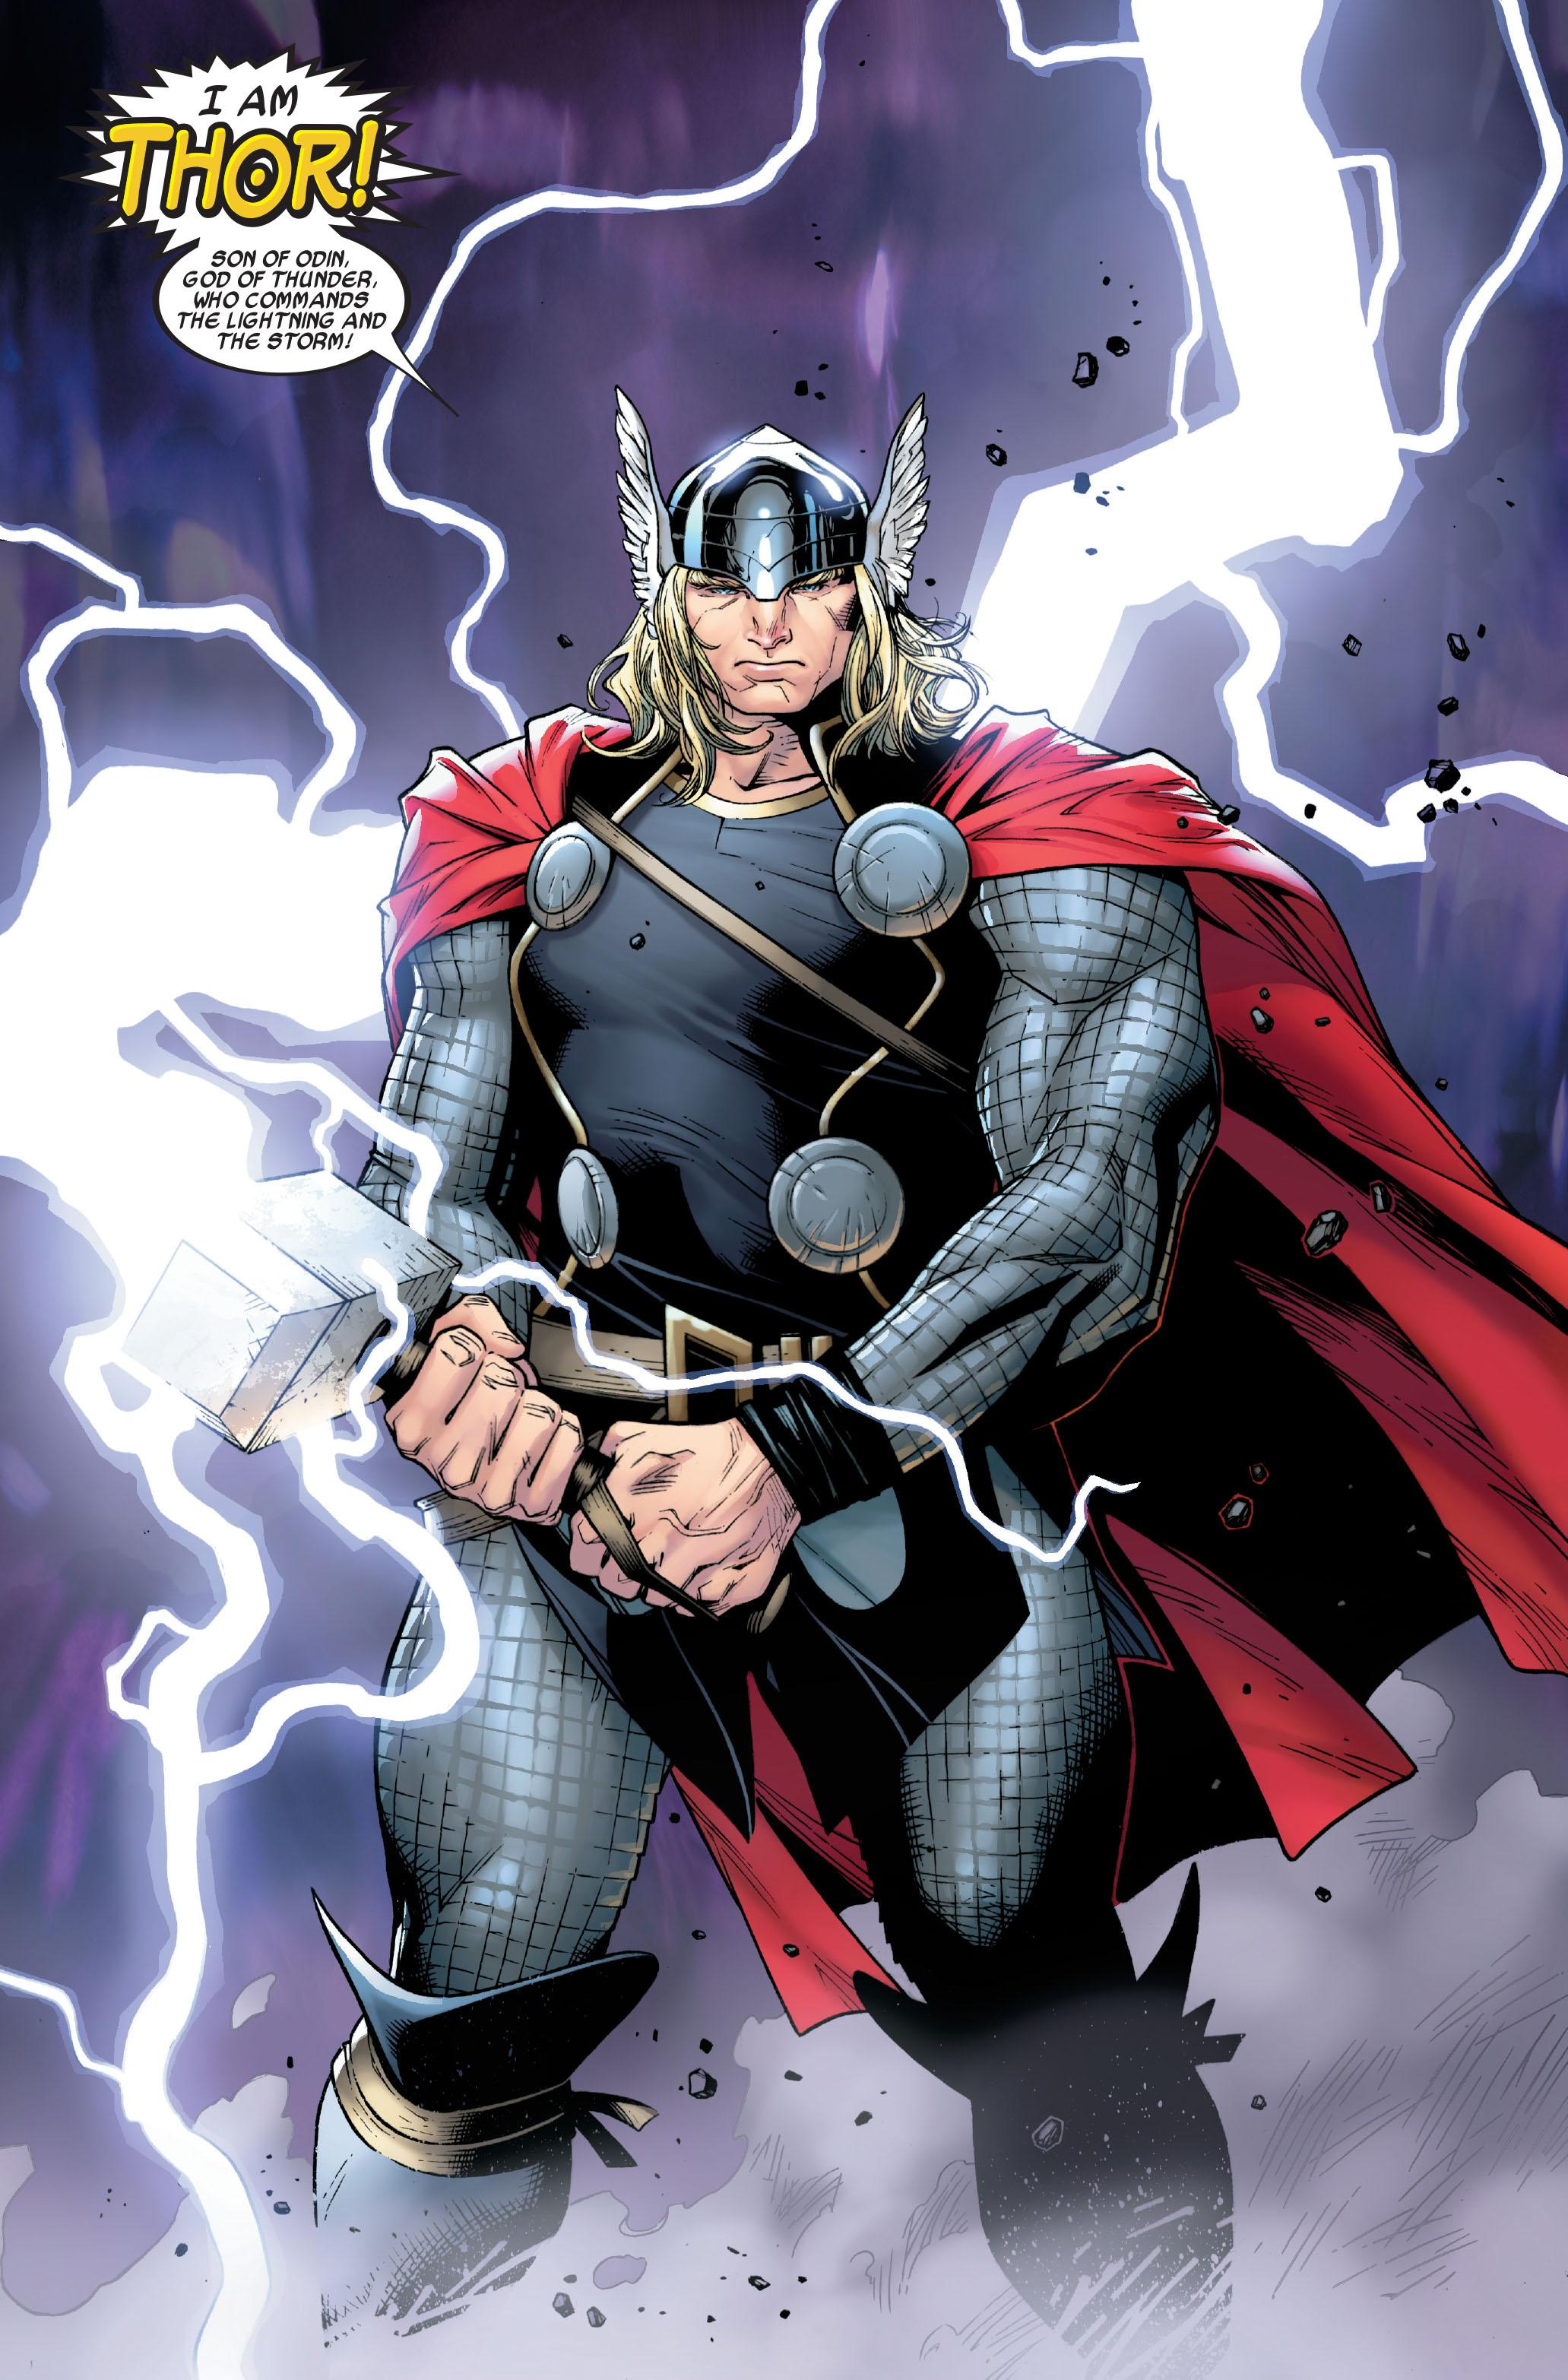 Thor By J. Michael Straczynski Vol. 01 review